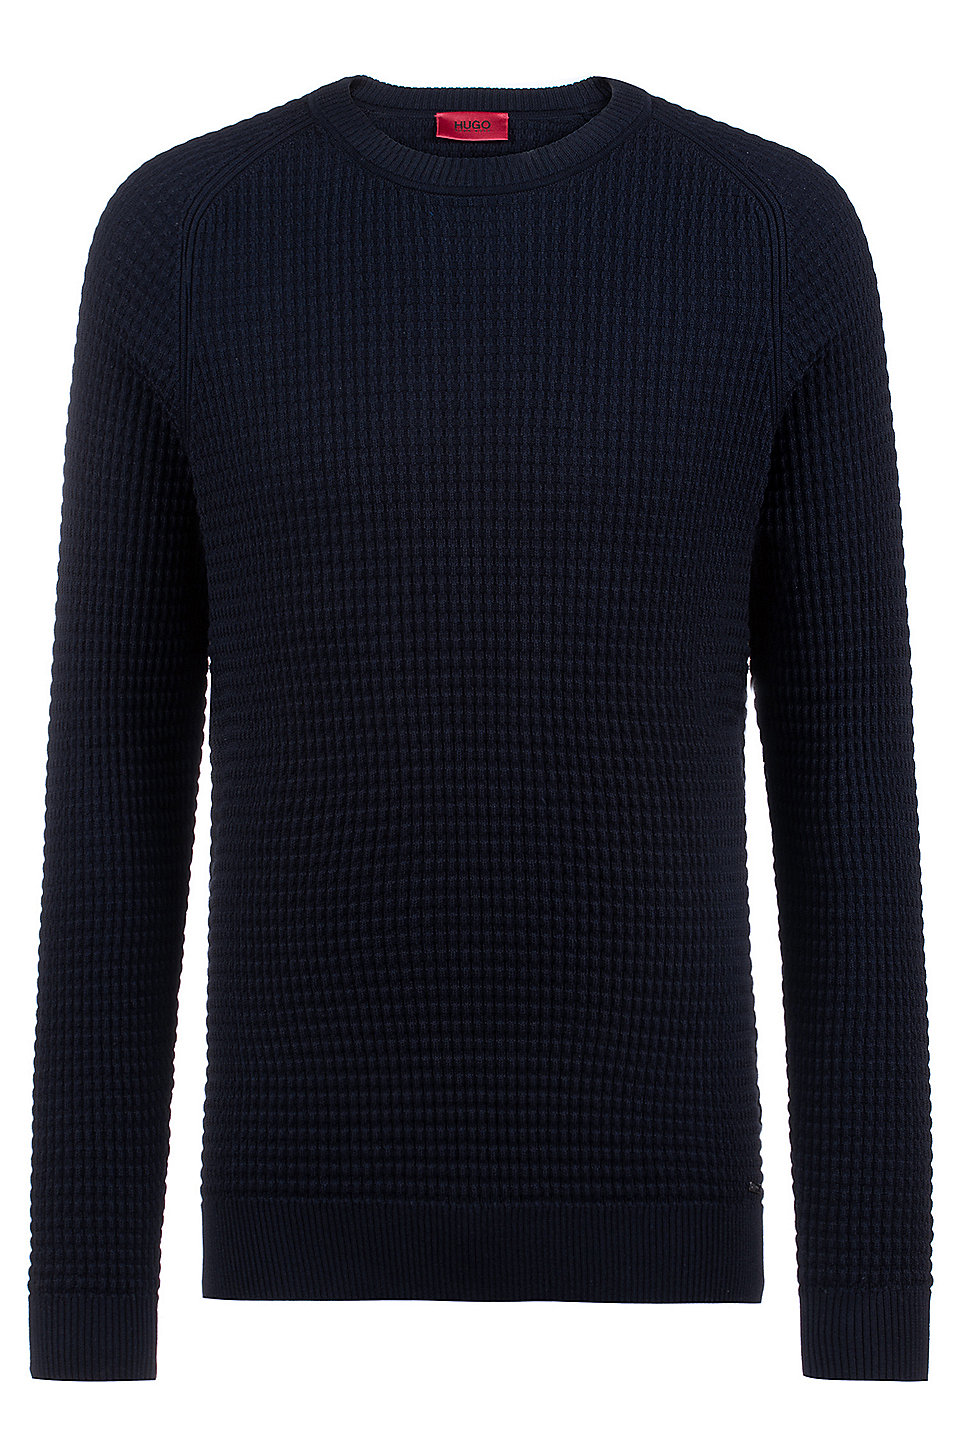 064343251 HUGO - Crew-neck sweater in knitted cotton jacquard